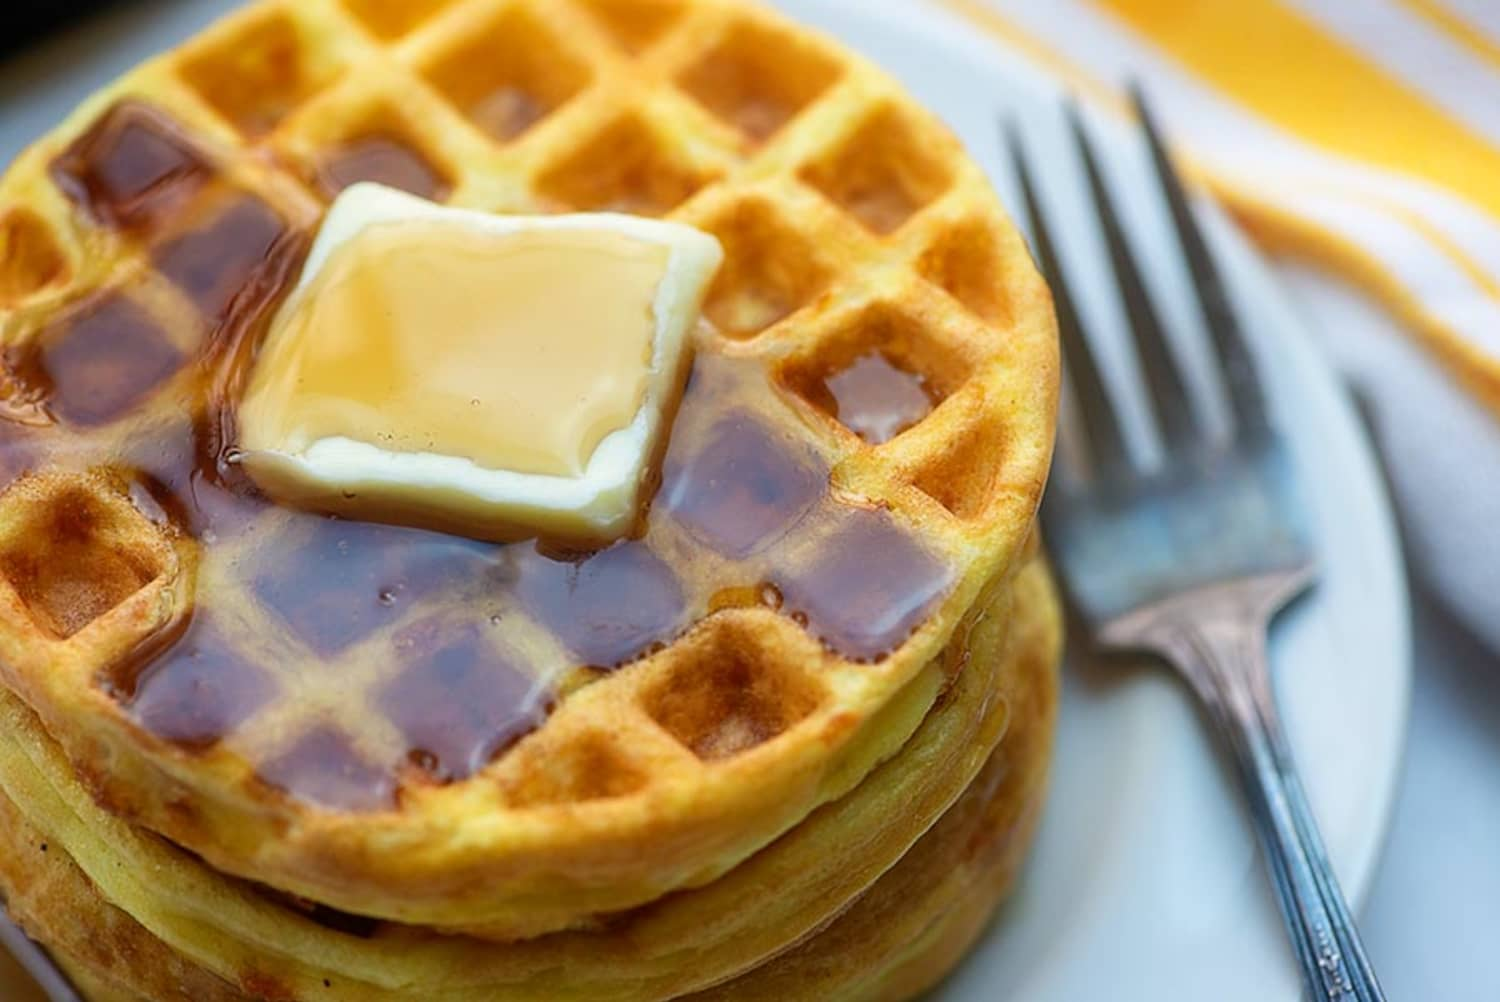 The Sudden Rise of the Chaffle — The Keto Waffle You Haven't Heard of Yet